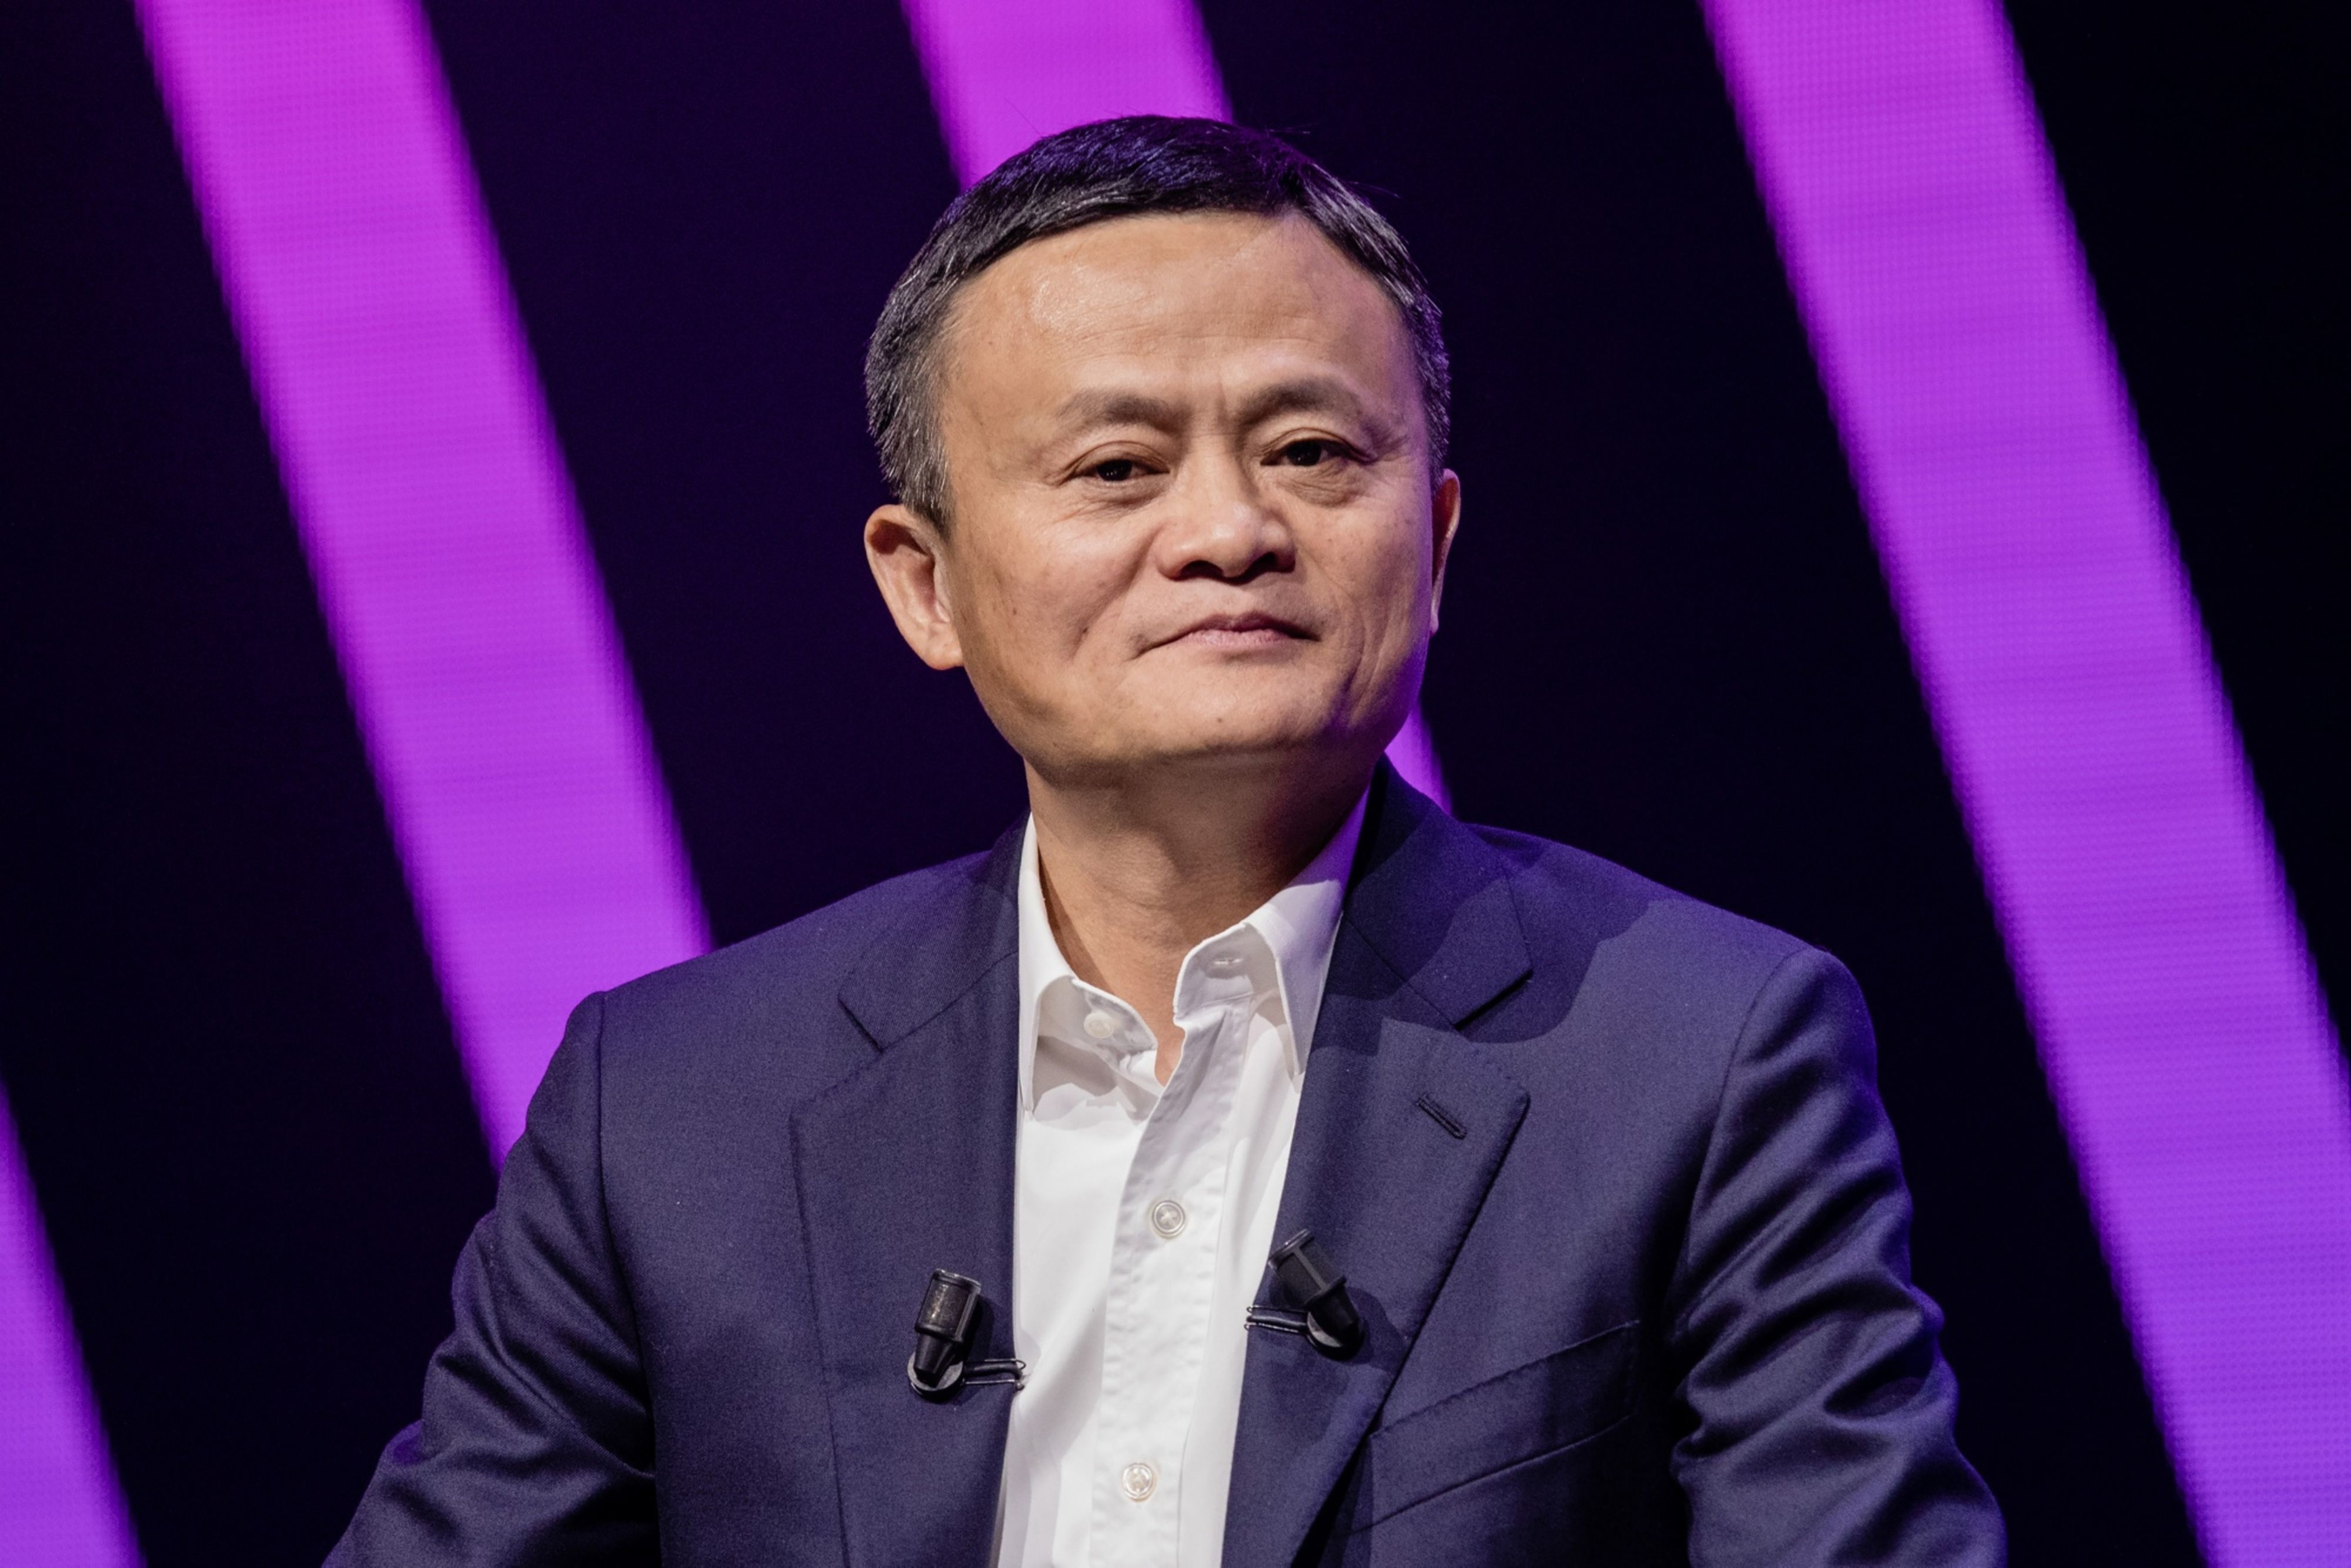 Alibaba's Jack Ma joins Twitter and his first tweet is about donating masks and coronavirus test kits to the U.S.